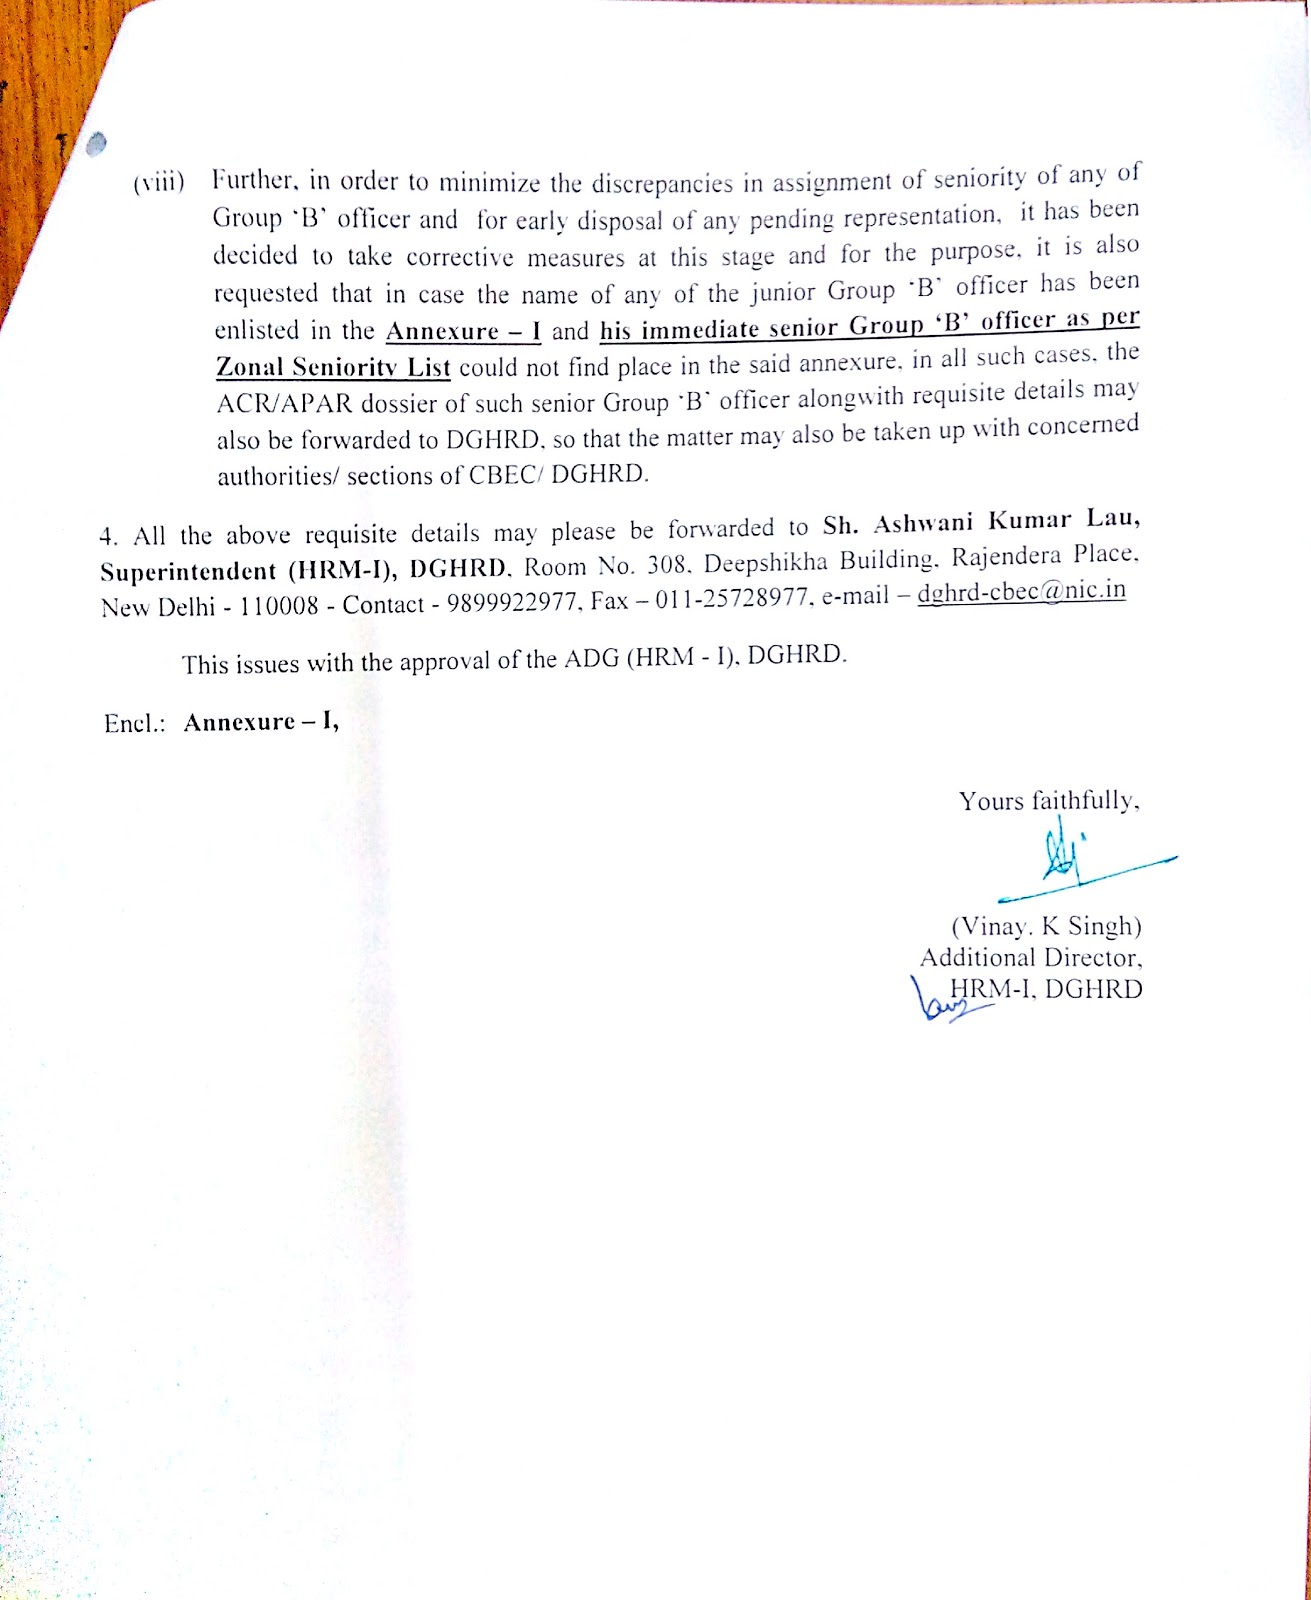 Cengo india dedicated to all central excise service tax and kindly find attached herewith the letter f no 8b112hrdhrm20155963 to 5991 dt 240815 of hrd sent to all ccas in ro dpc for the post of ac for spiritdancerdesigns Image collections